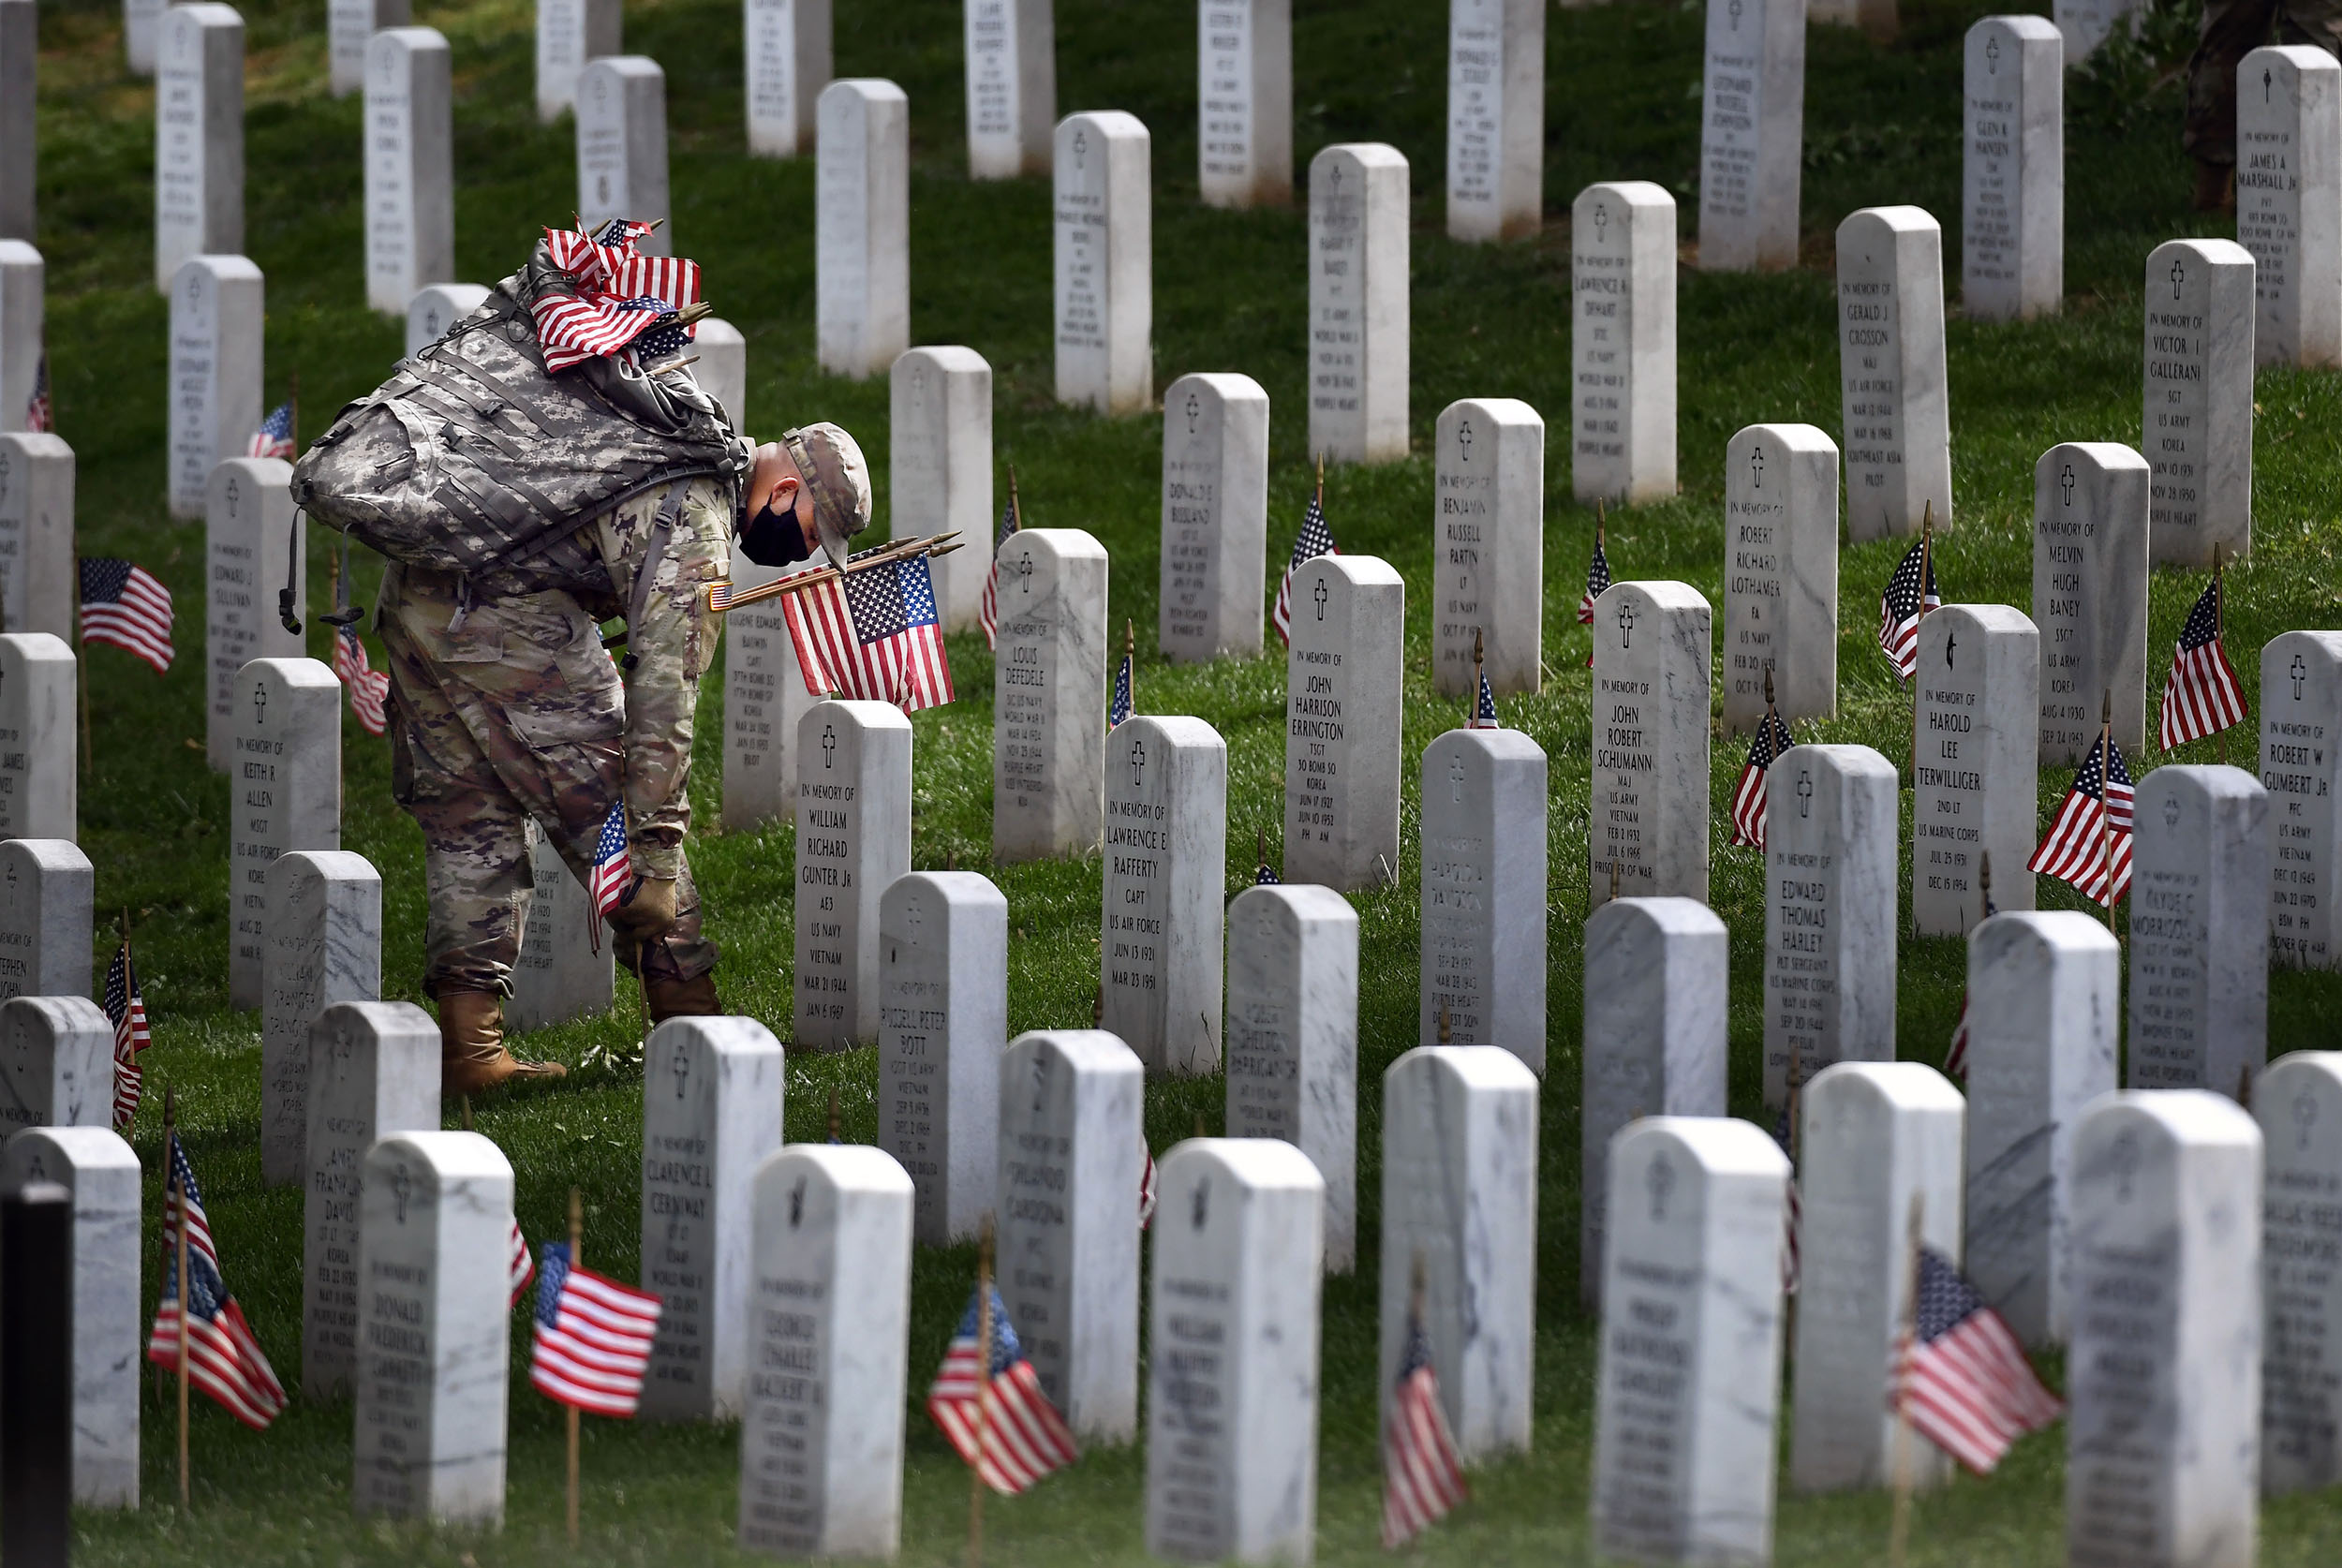 A member of the military place flags near headstones at the Arlington National Cemetery for Memorial Day in Arlington, Virginia on Thursday, May 21.